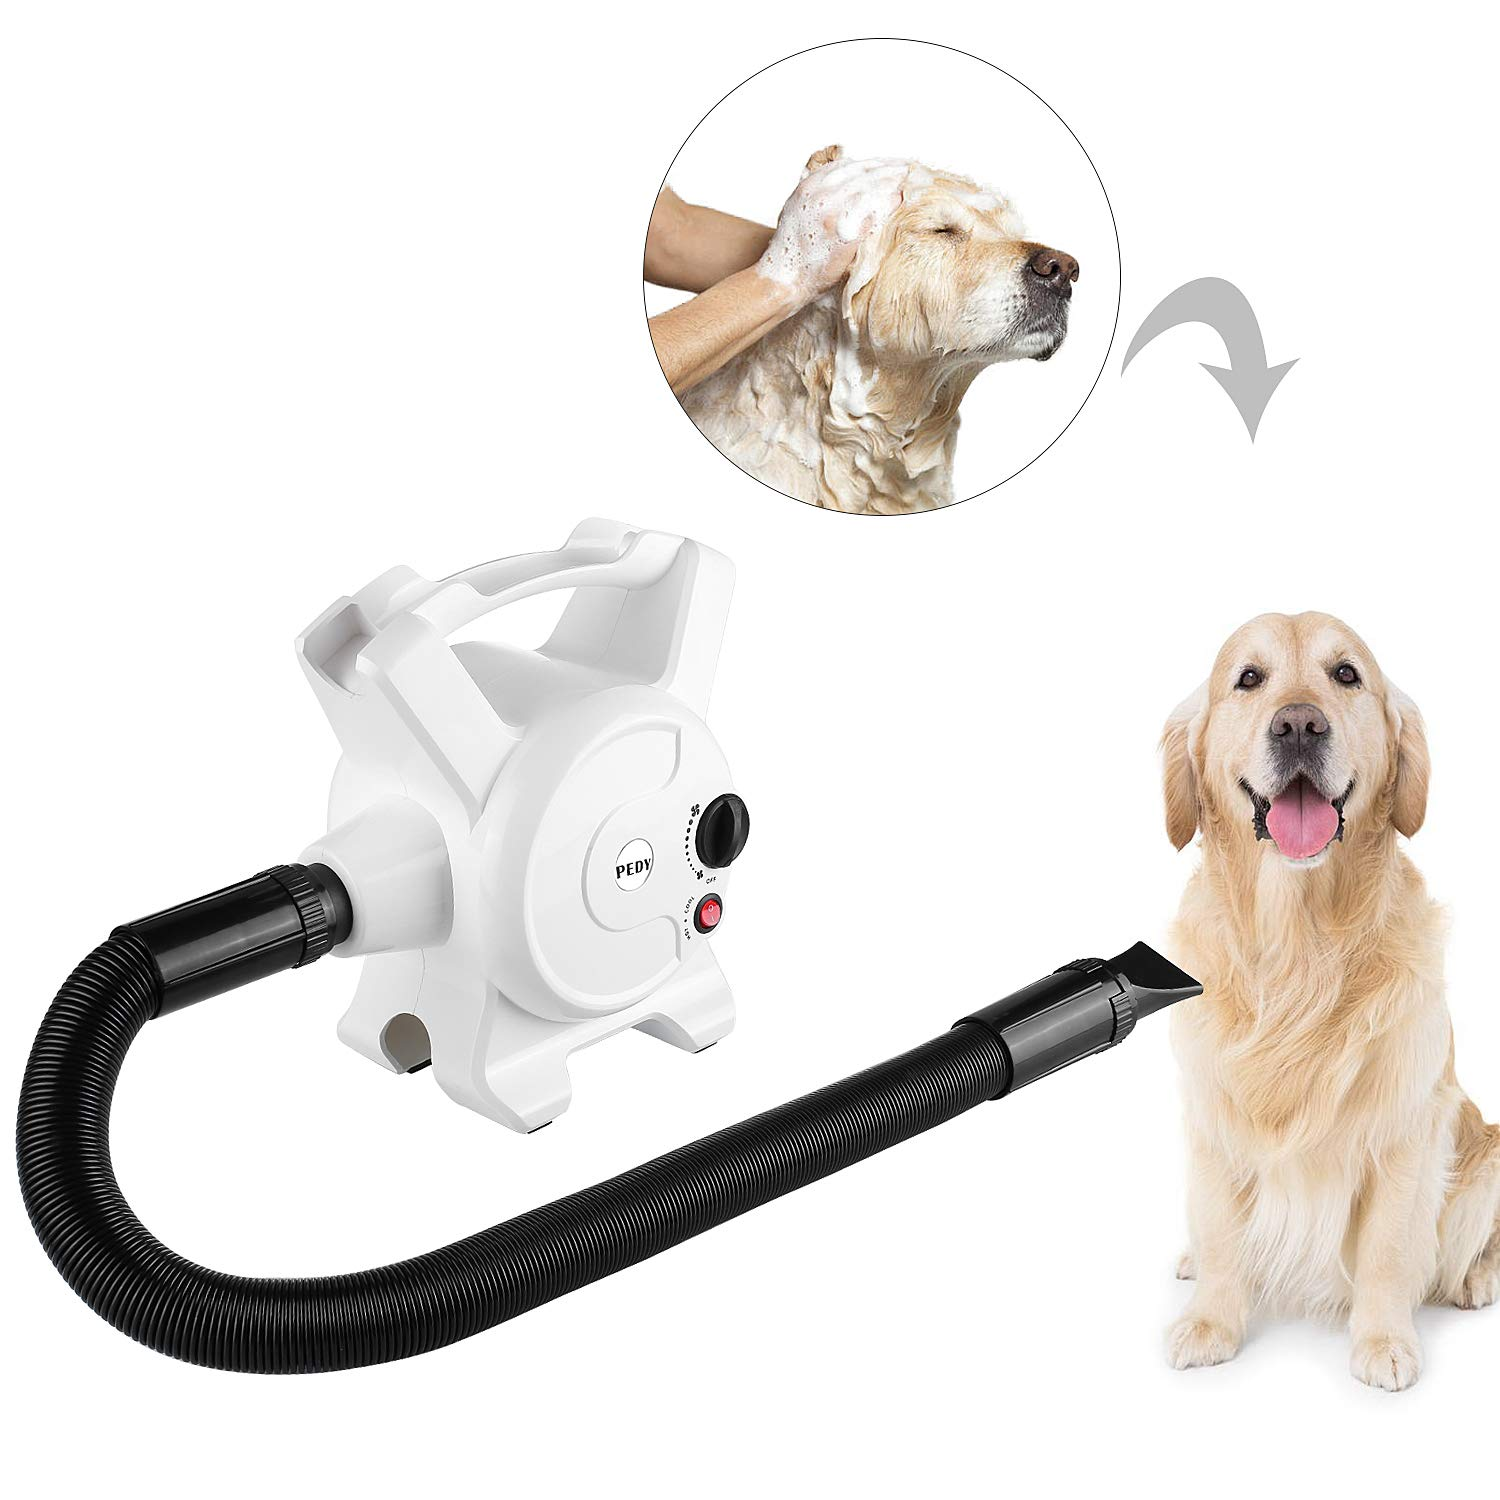 PEDY Dog Hair Dryer 3.2 HP Stepless Adjustable Speed Pet Grooming Dryer for Cat Blower with 3 Different Nozzles 2400W